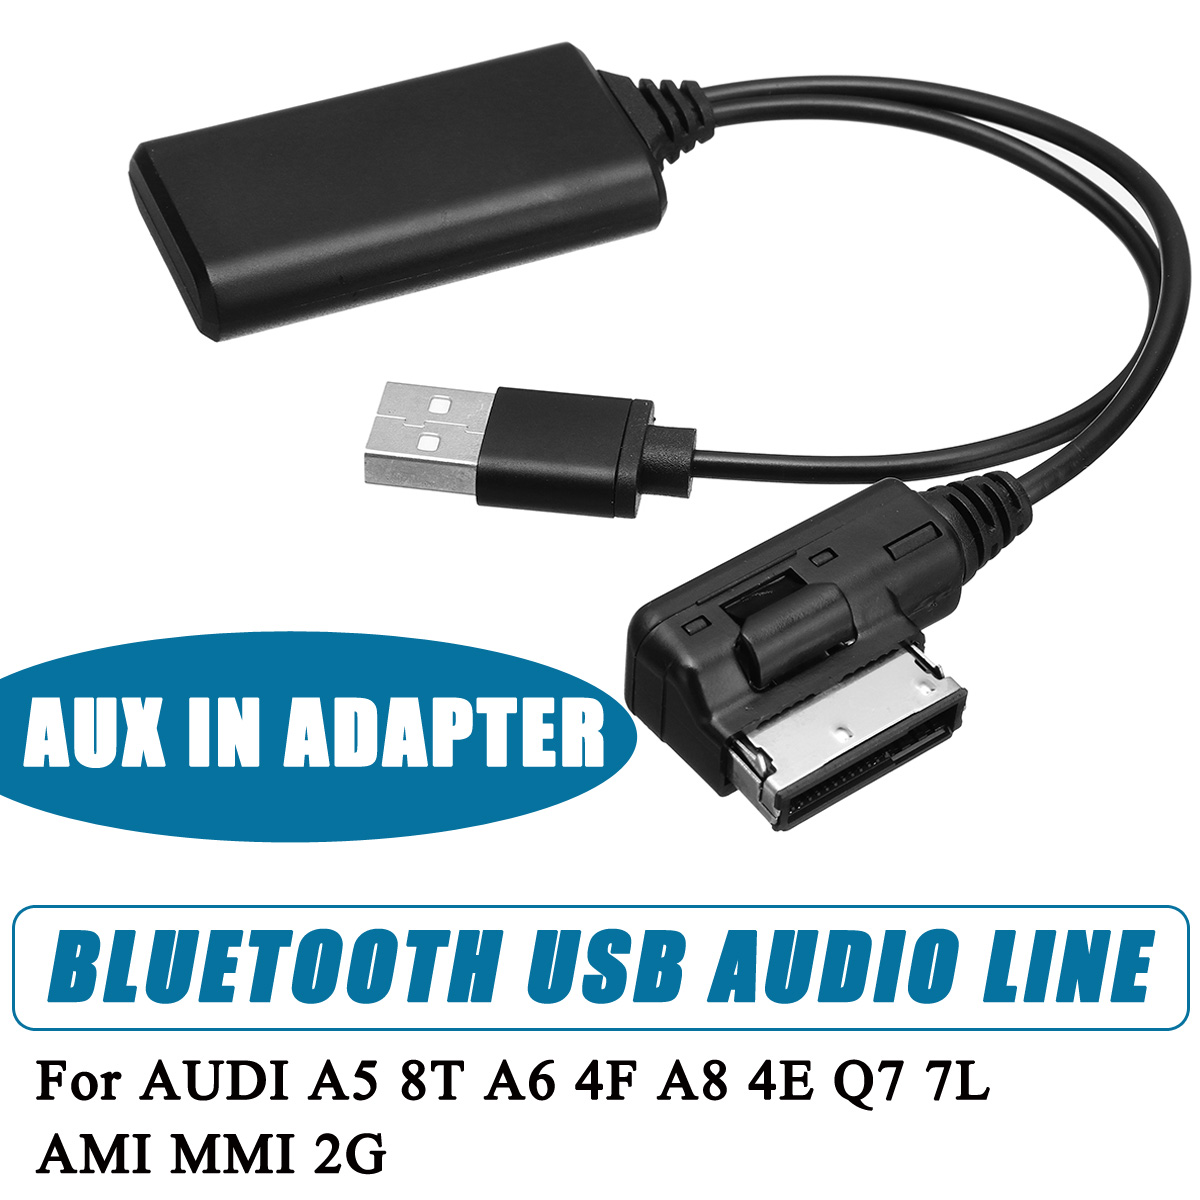 Mini Wireless Bluetooth USB AUX In Adapter Cable Music Audio Receiver Adapter For AUDI A5 8T A6 4F A8 4E Q7 7L for AMI MMI 2G usb ami music interface plug harness audio cable wire audi a4 a5 a6 q5 q7 ami aux usb interface cable harness 4f0 035 909